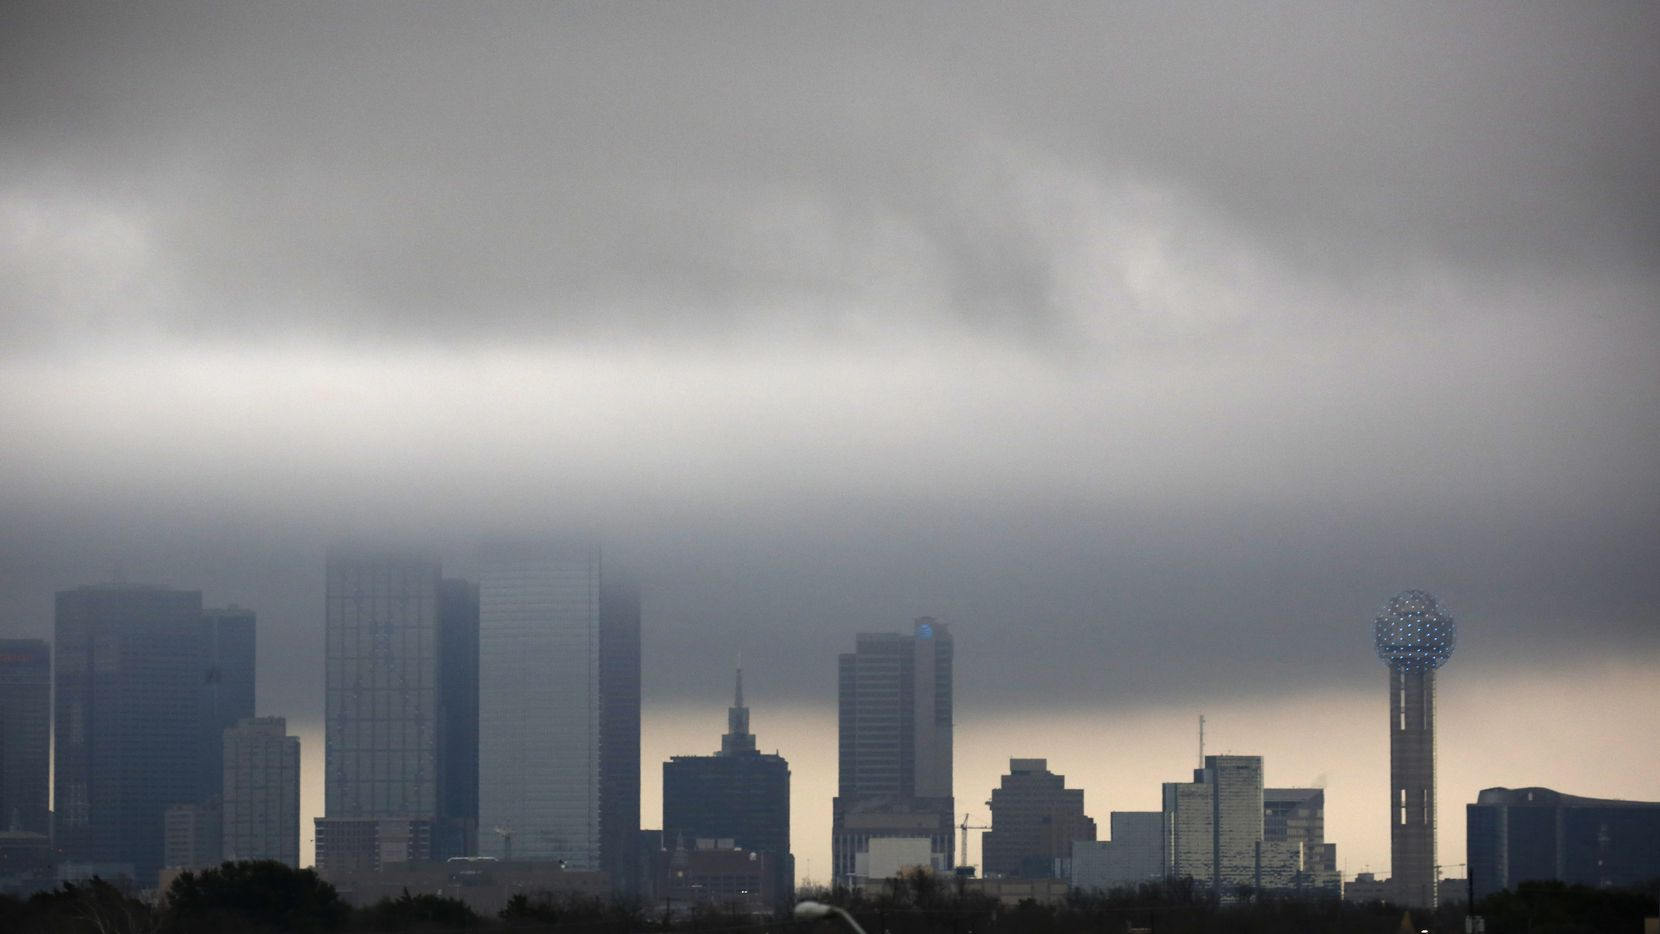 Low clouds developing along the cold front pass through buildings in downtown Dallas, Tuesday morning, February 4, 2020. Temperatures are expected to drop throughout the day ahead of some wintry precipitation overnight. (Tom Fox/The Dallas Morning News)